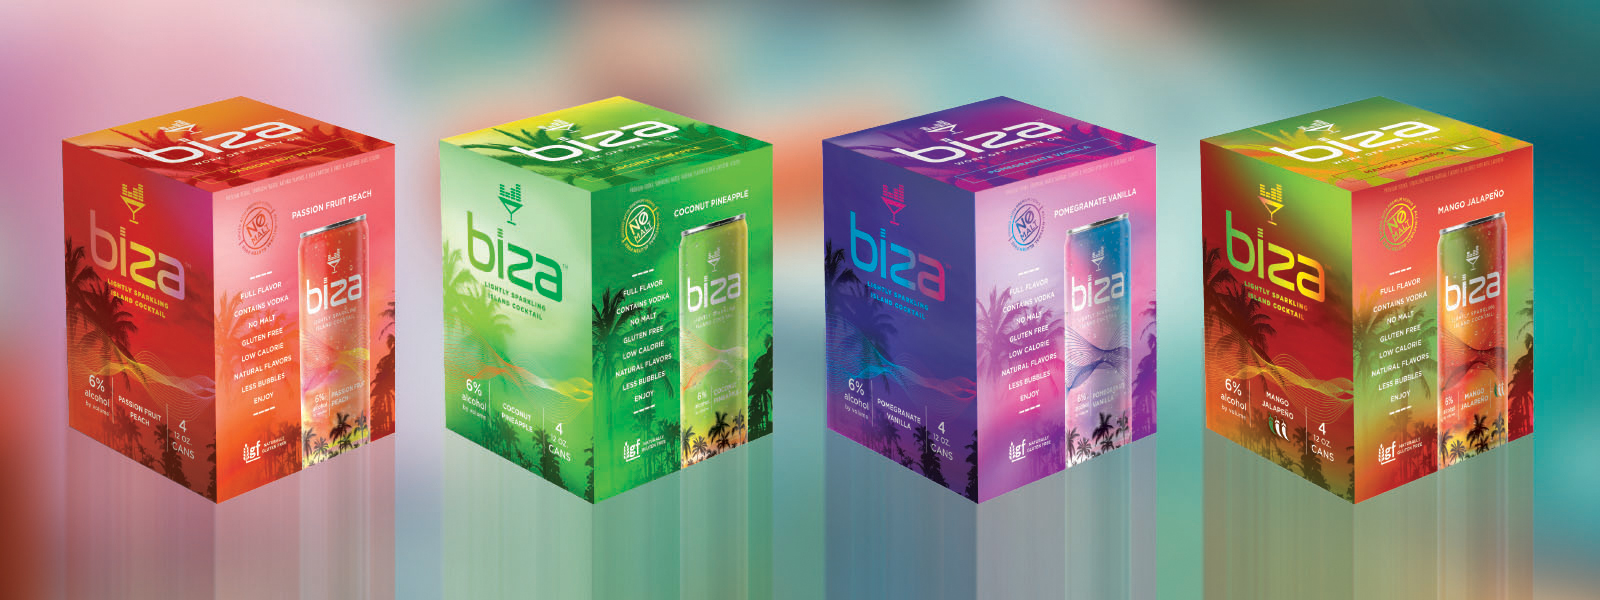 Biza lightly sparkling island cocktails come in 4-pack boxes.